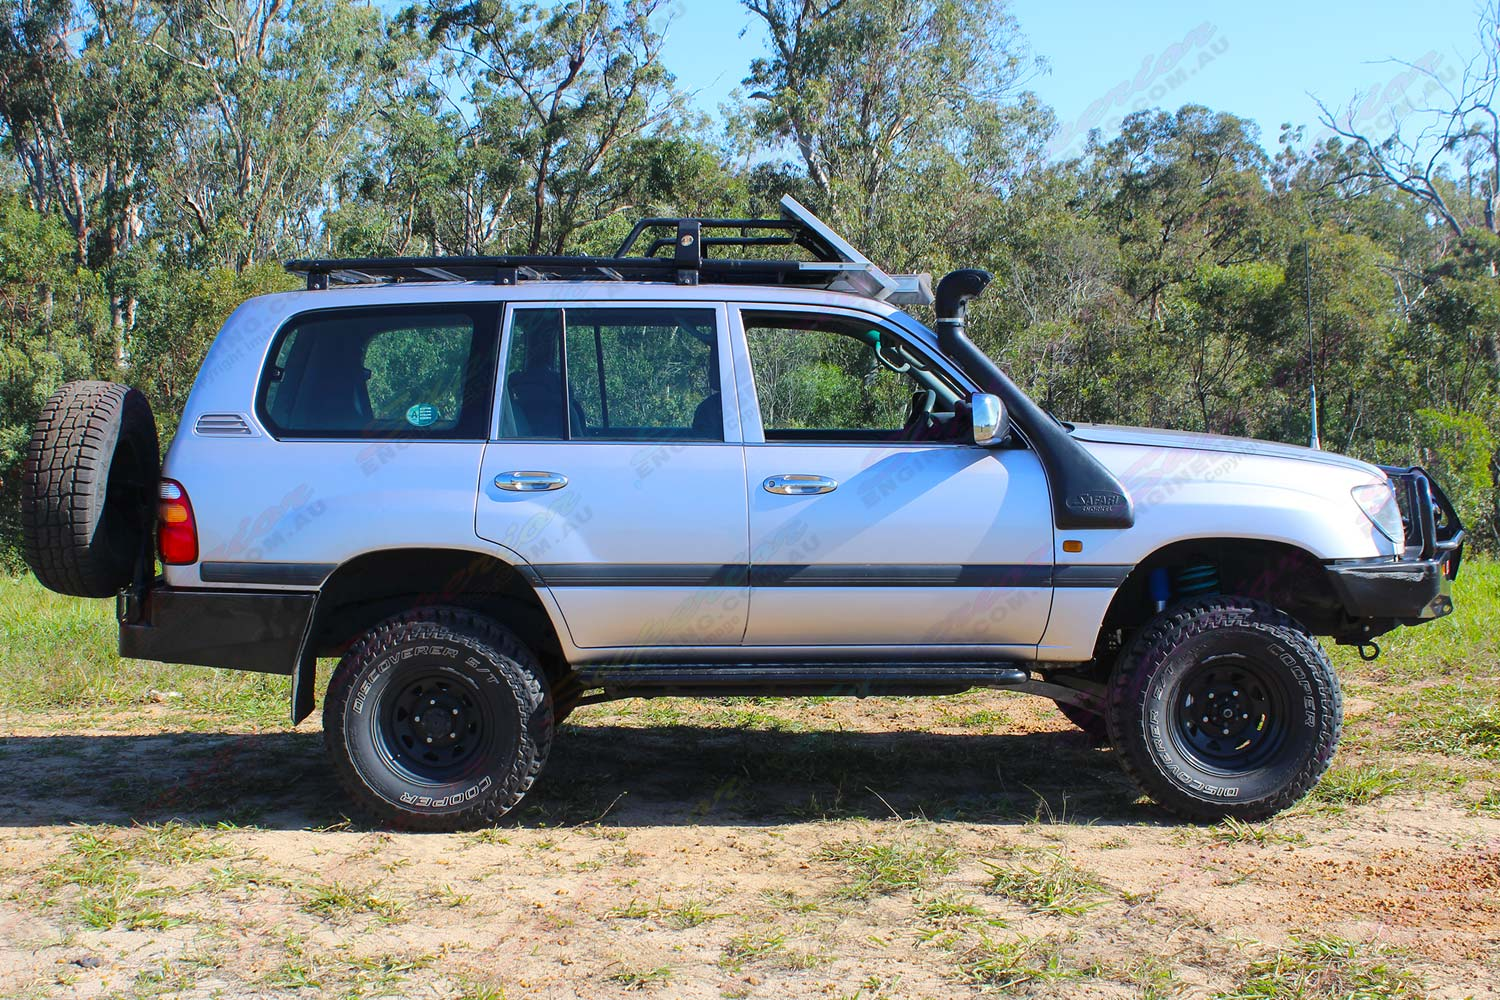 Right side view of a 105 Series Toyota Landcruiser wagon after being fitted with a heavy duty dobinsons coil springs, Superior nitro gas shocks and steering damper